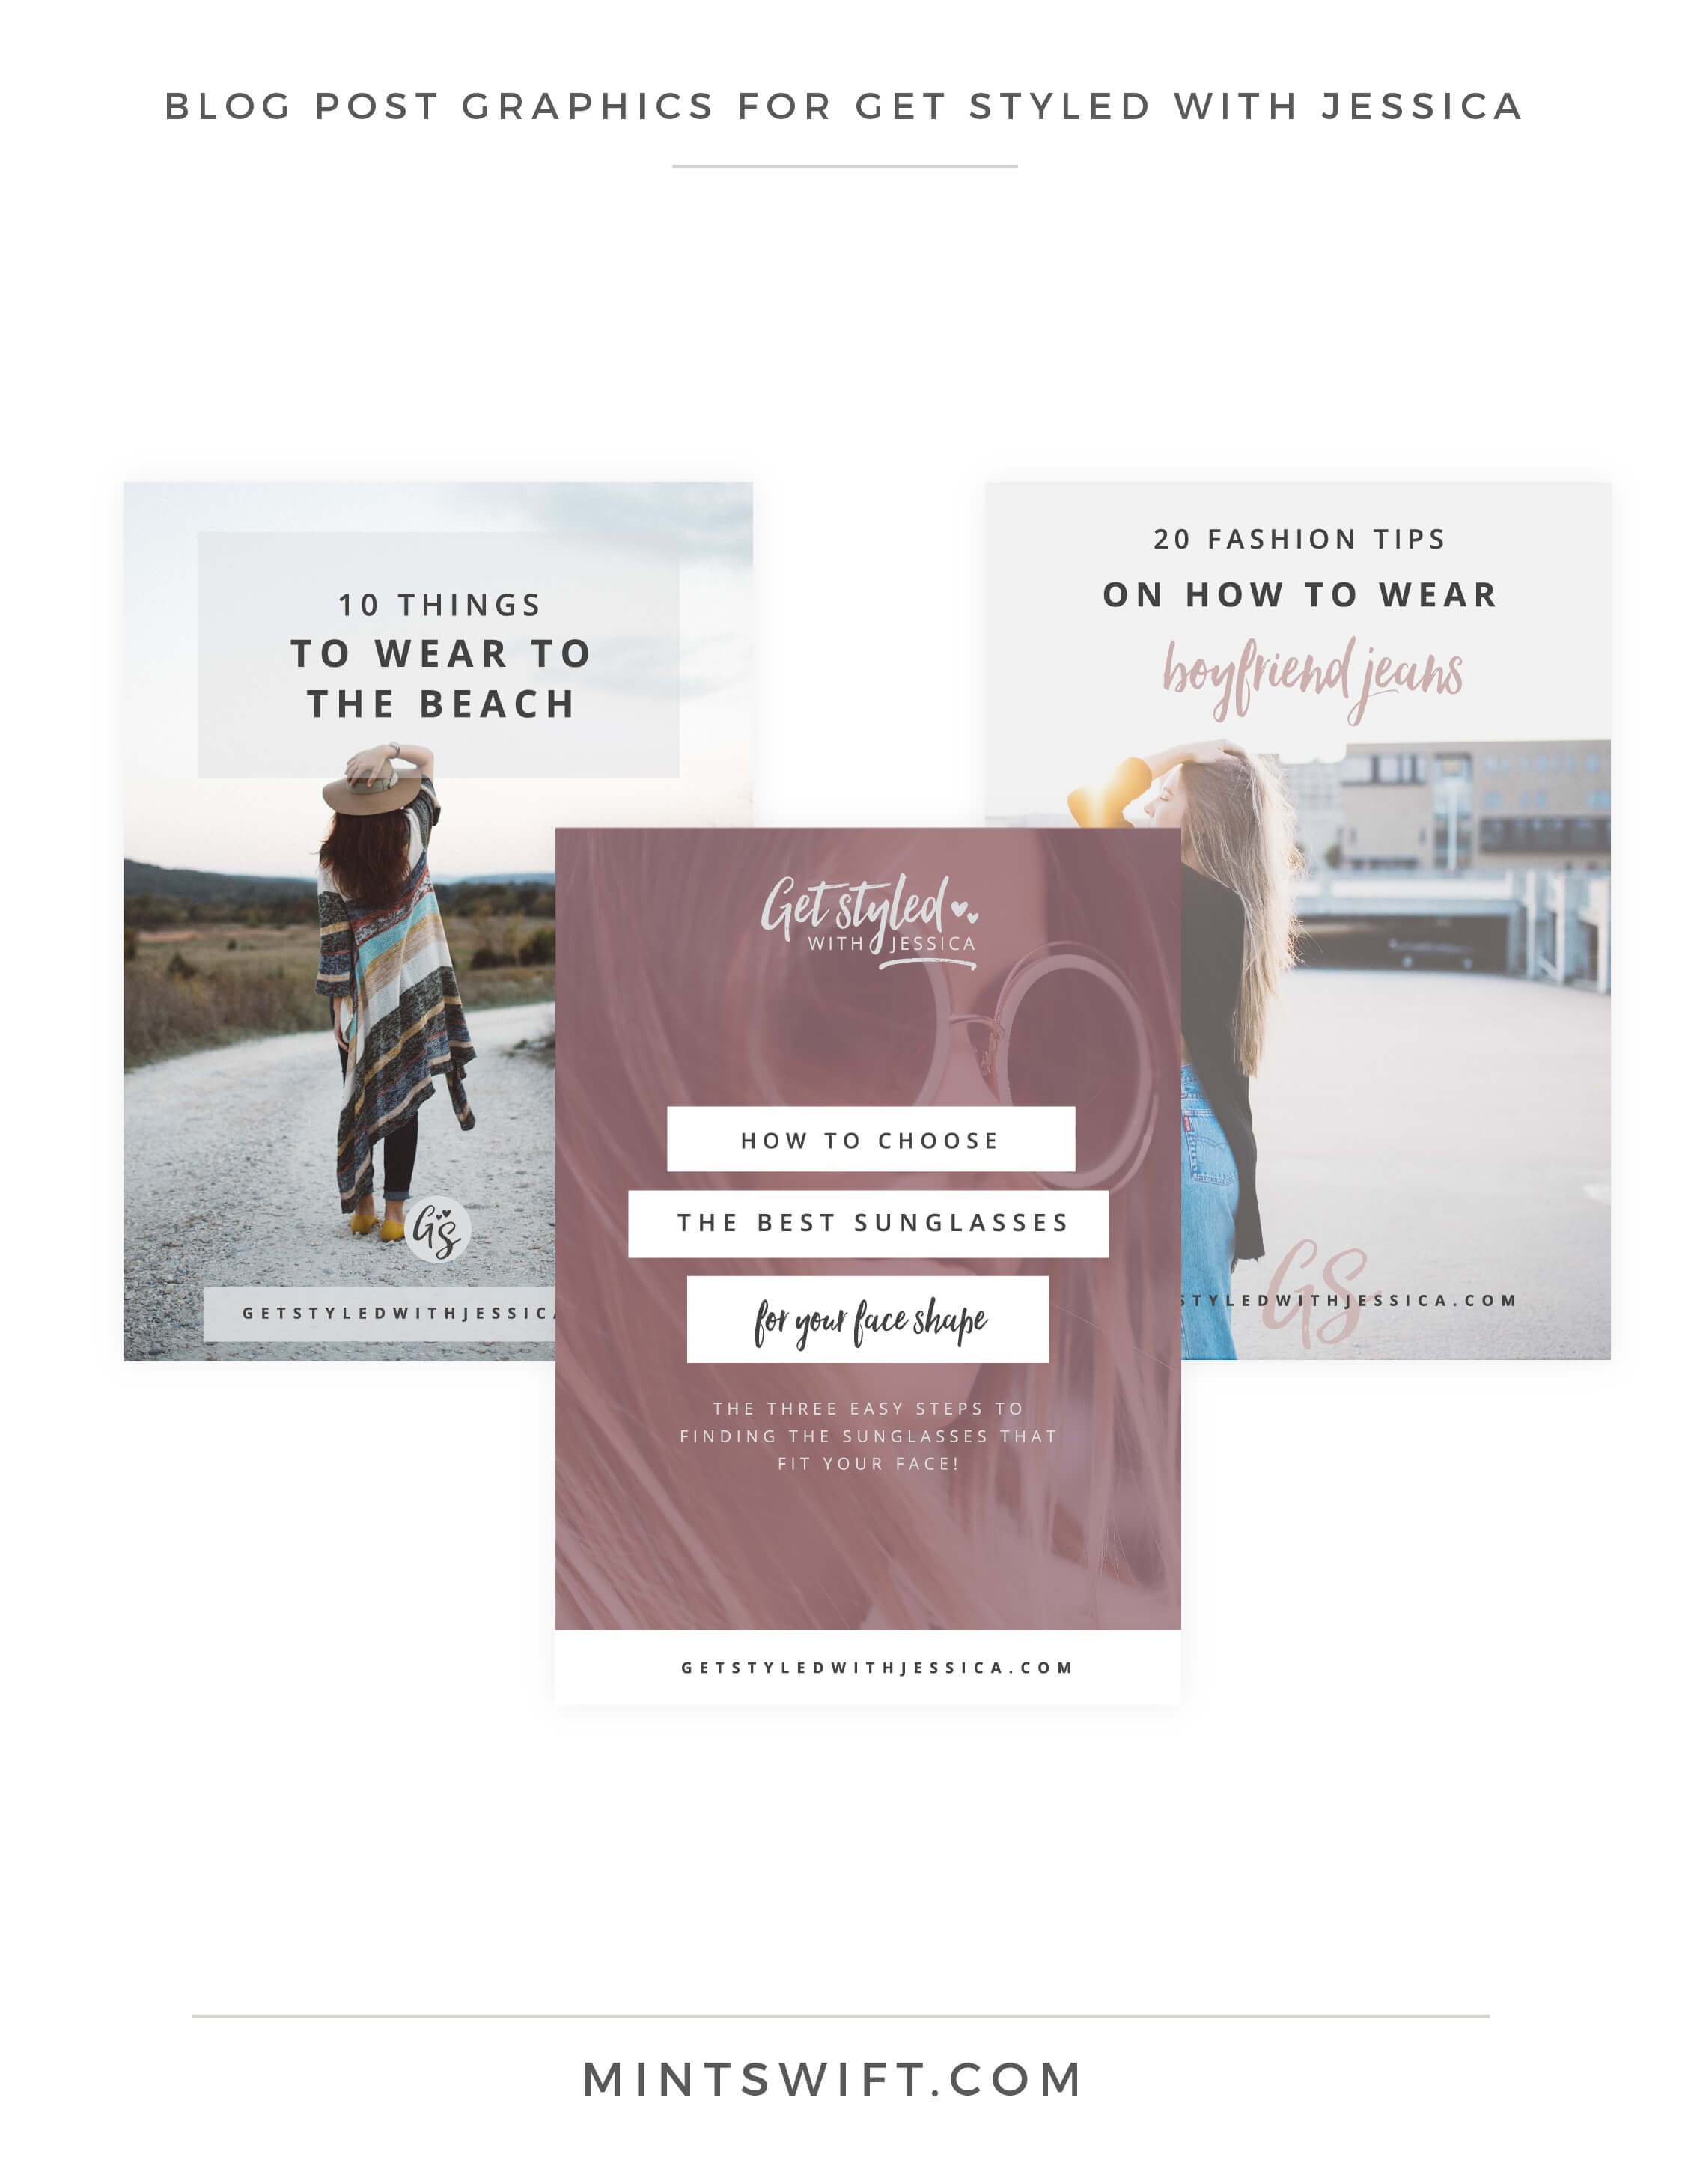 Get Styled with Jessica - Blog Post Graphics - Brand Design Package - MintSwift